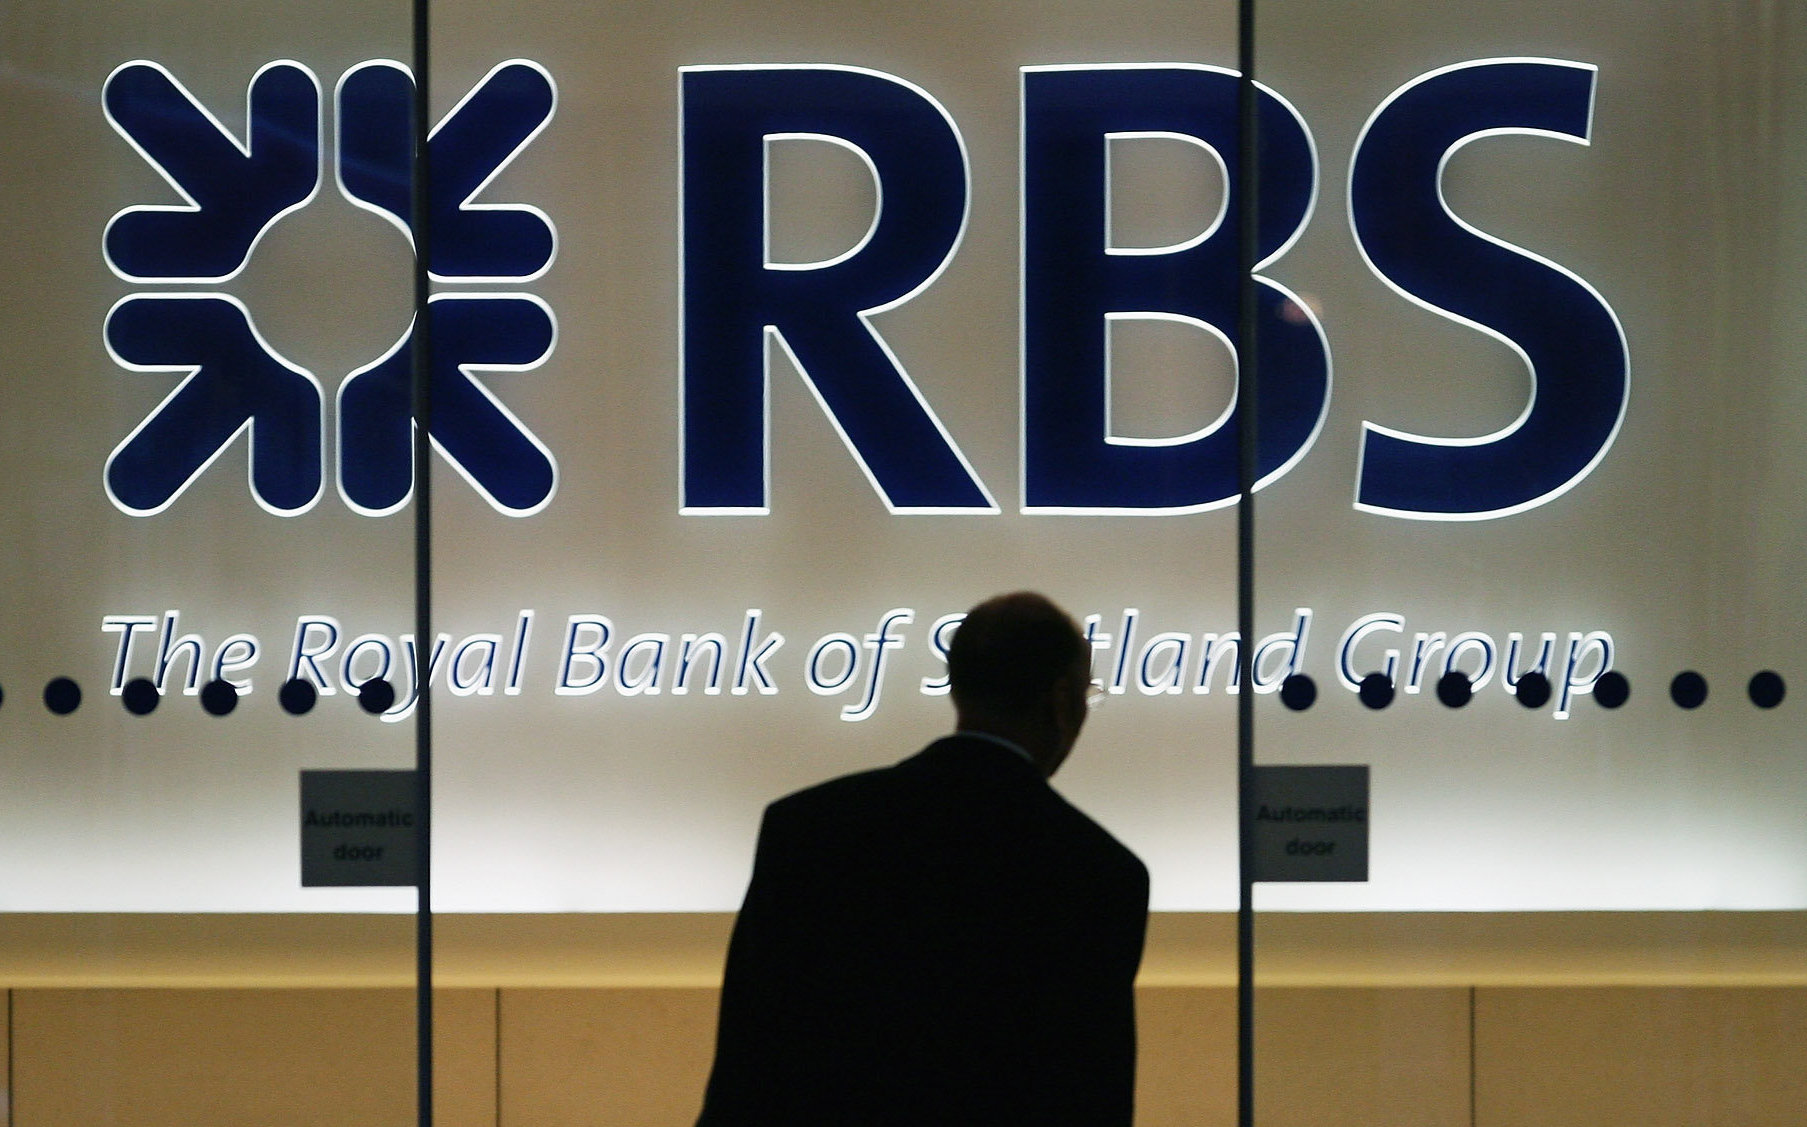 RBS almost collapsed in the 2008 financial crisis